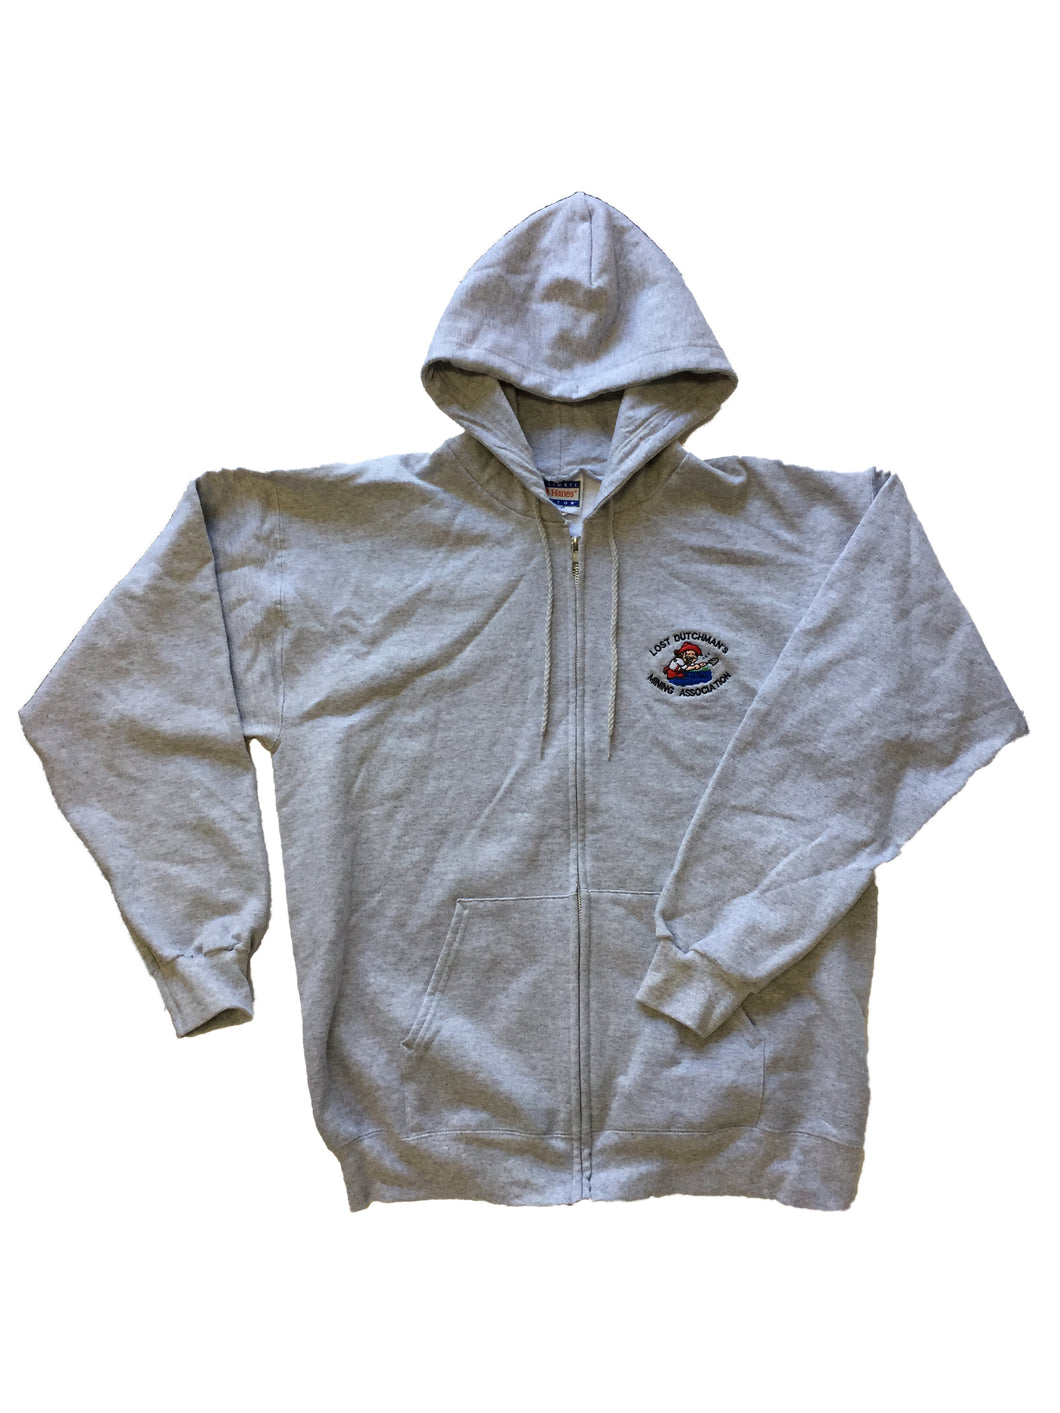 LDMA Zip-up Sweatshirt - Gray